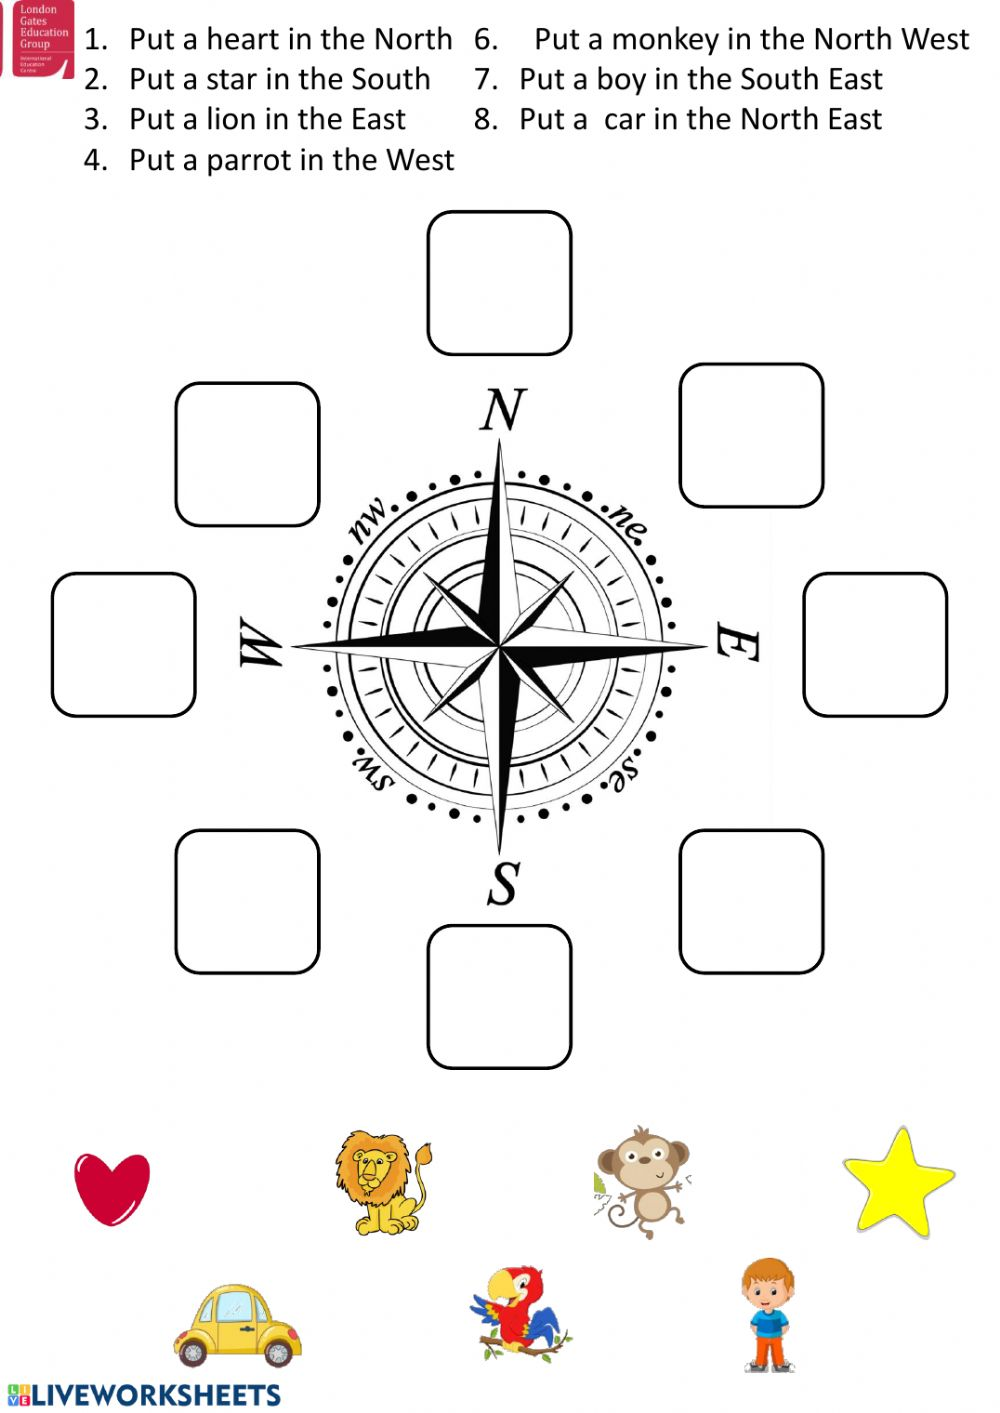 hight resolution of Cardinal directions interactive worksheet